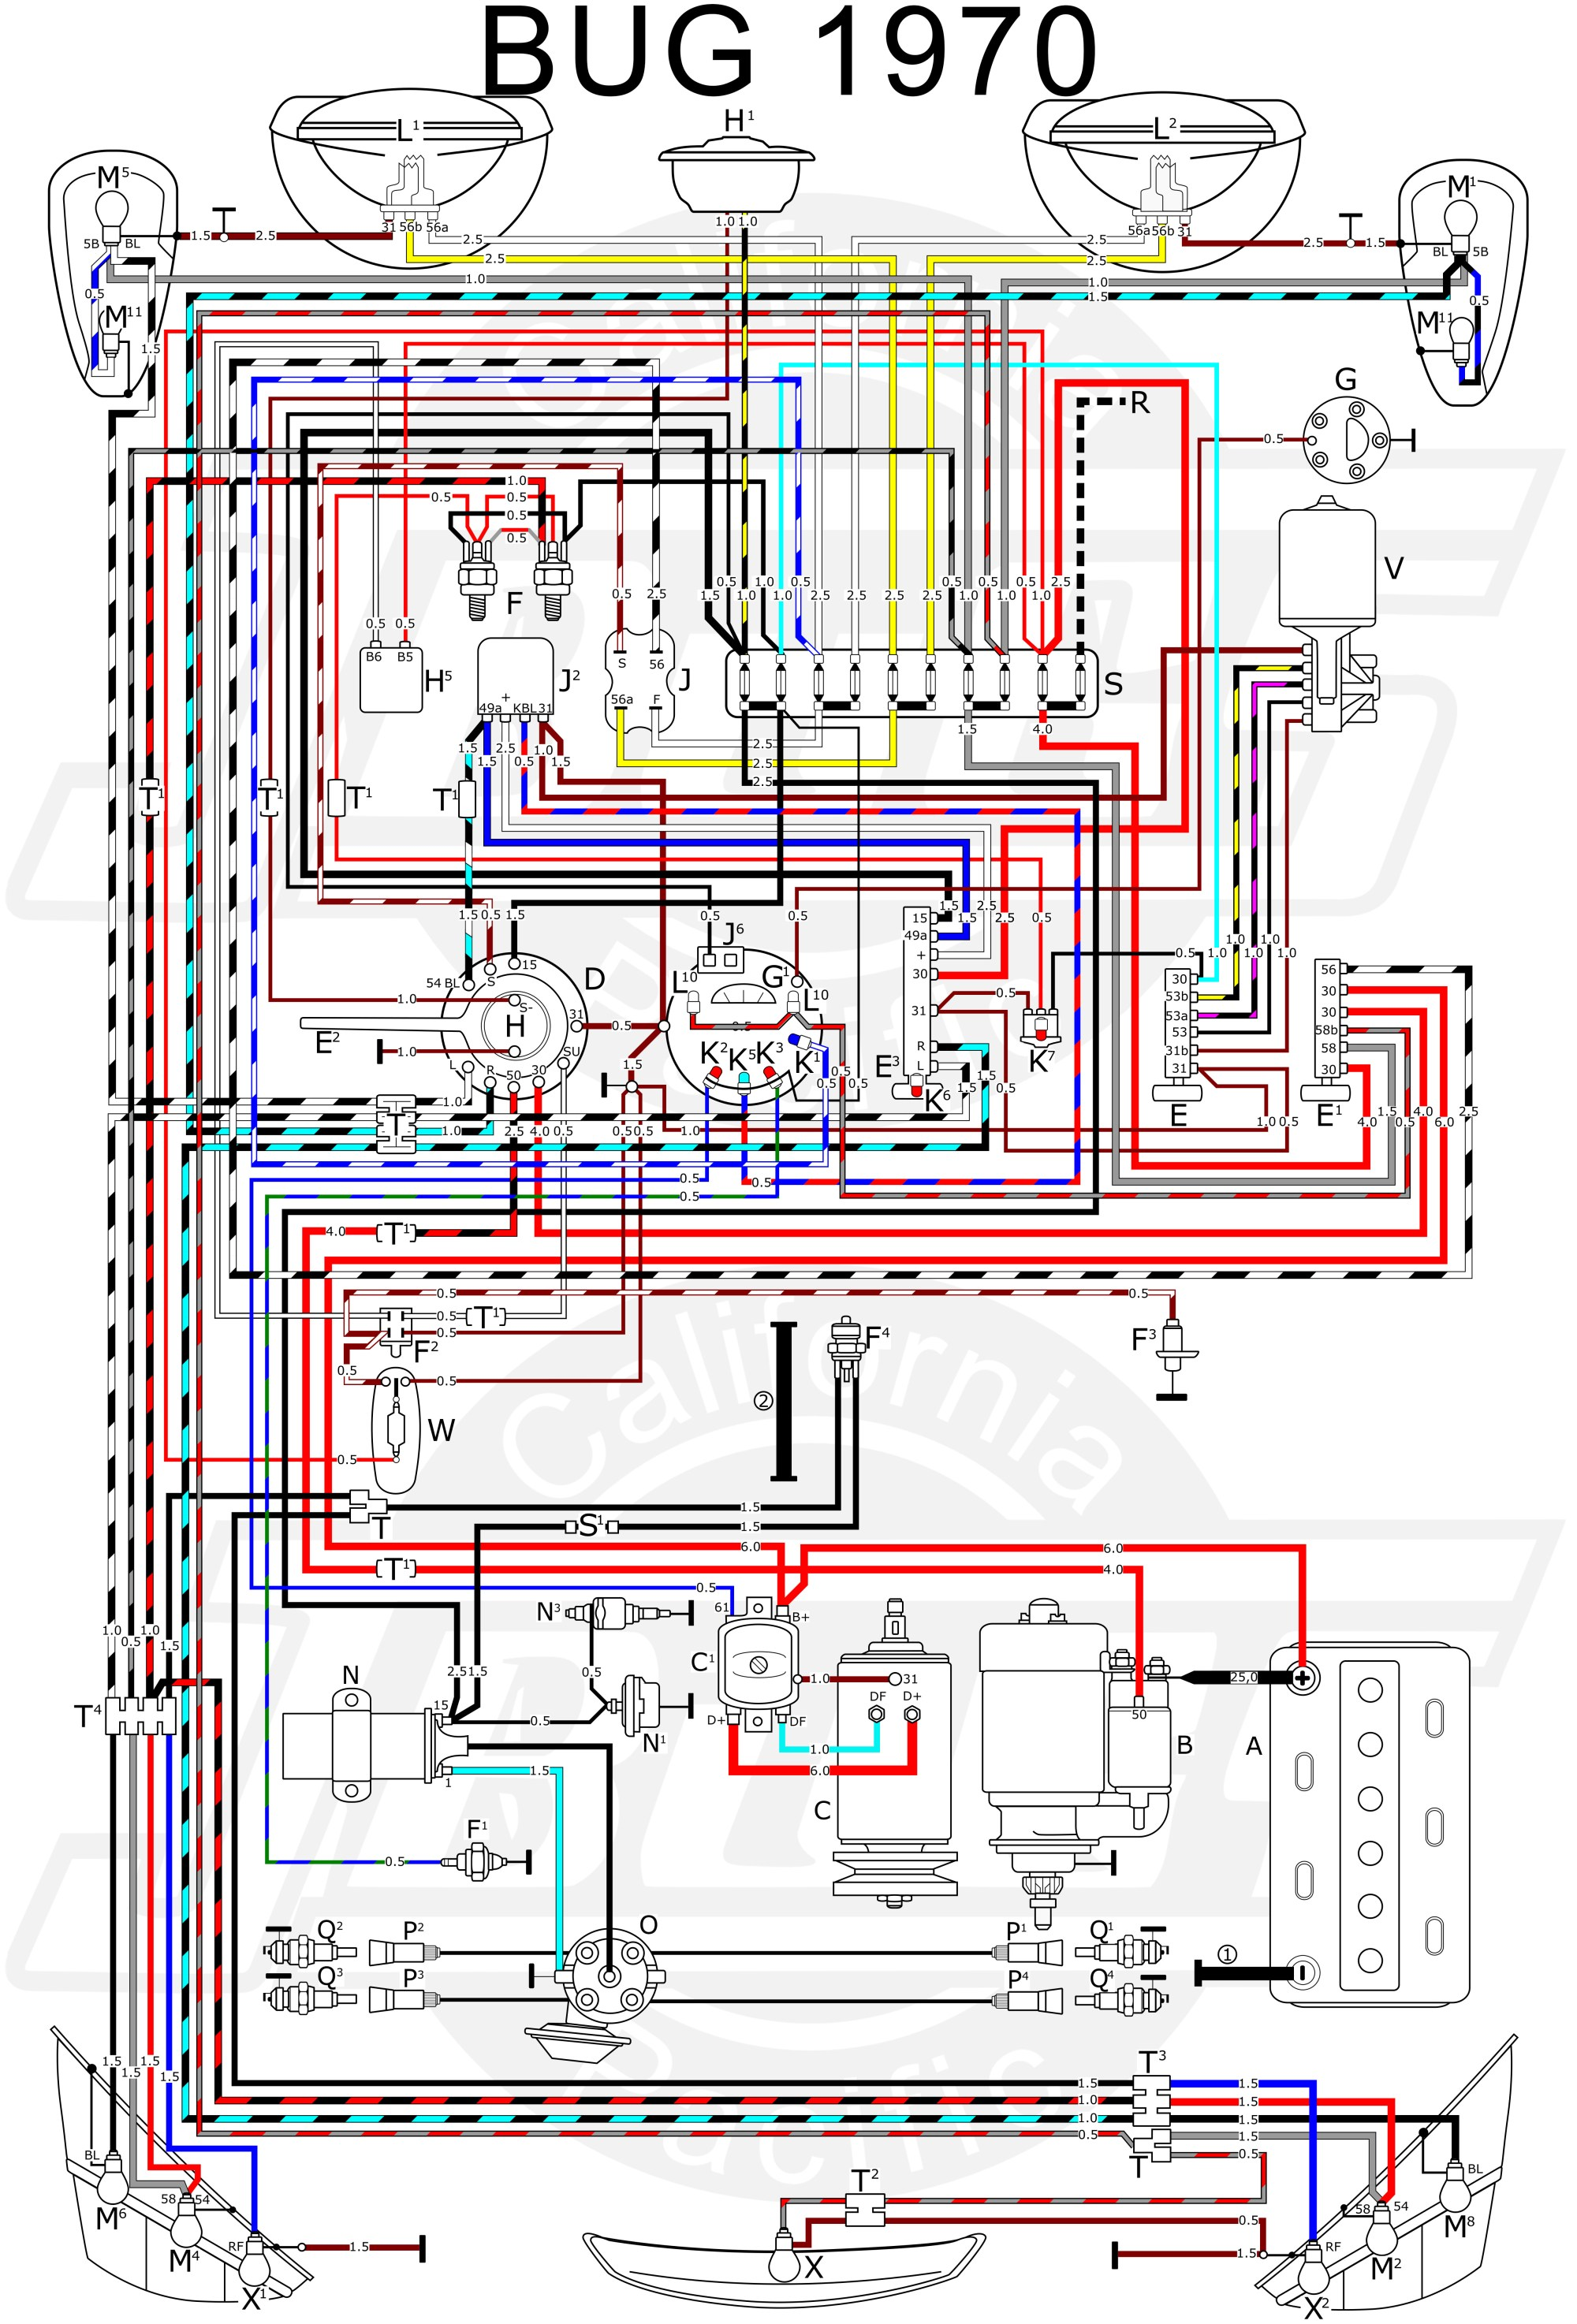 hight resolution of 1970 vw engine diagram wiring diagram database 1974 vw alternator wiring diagram 1974 vw wiring diagram